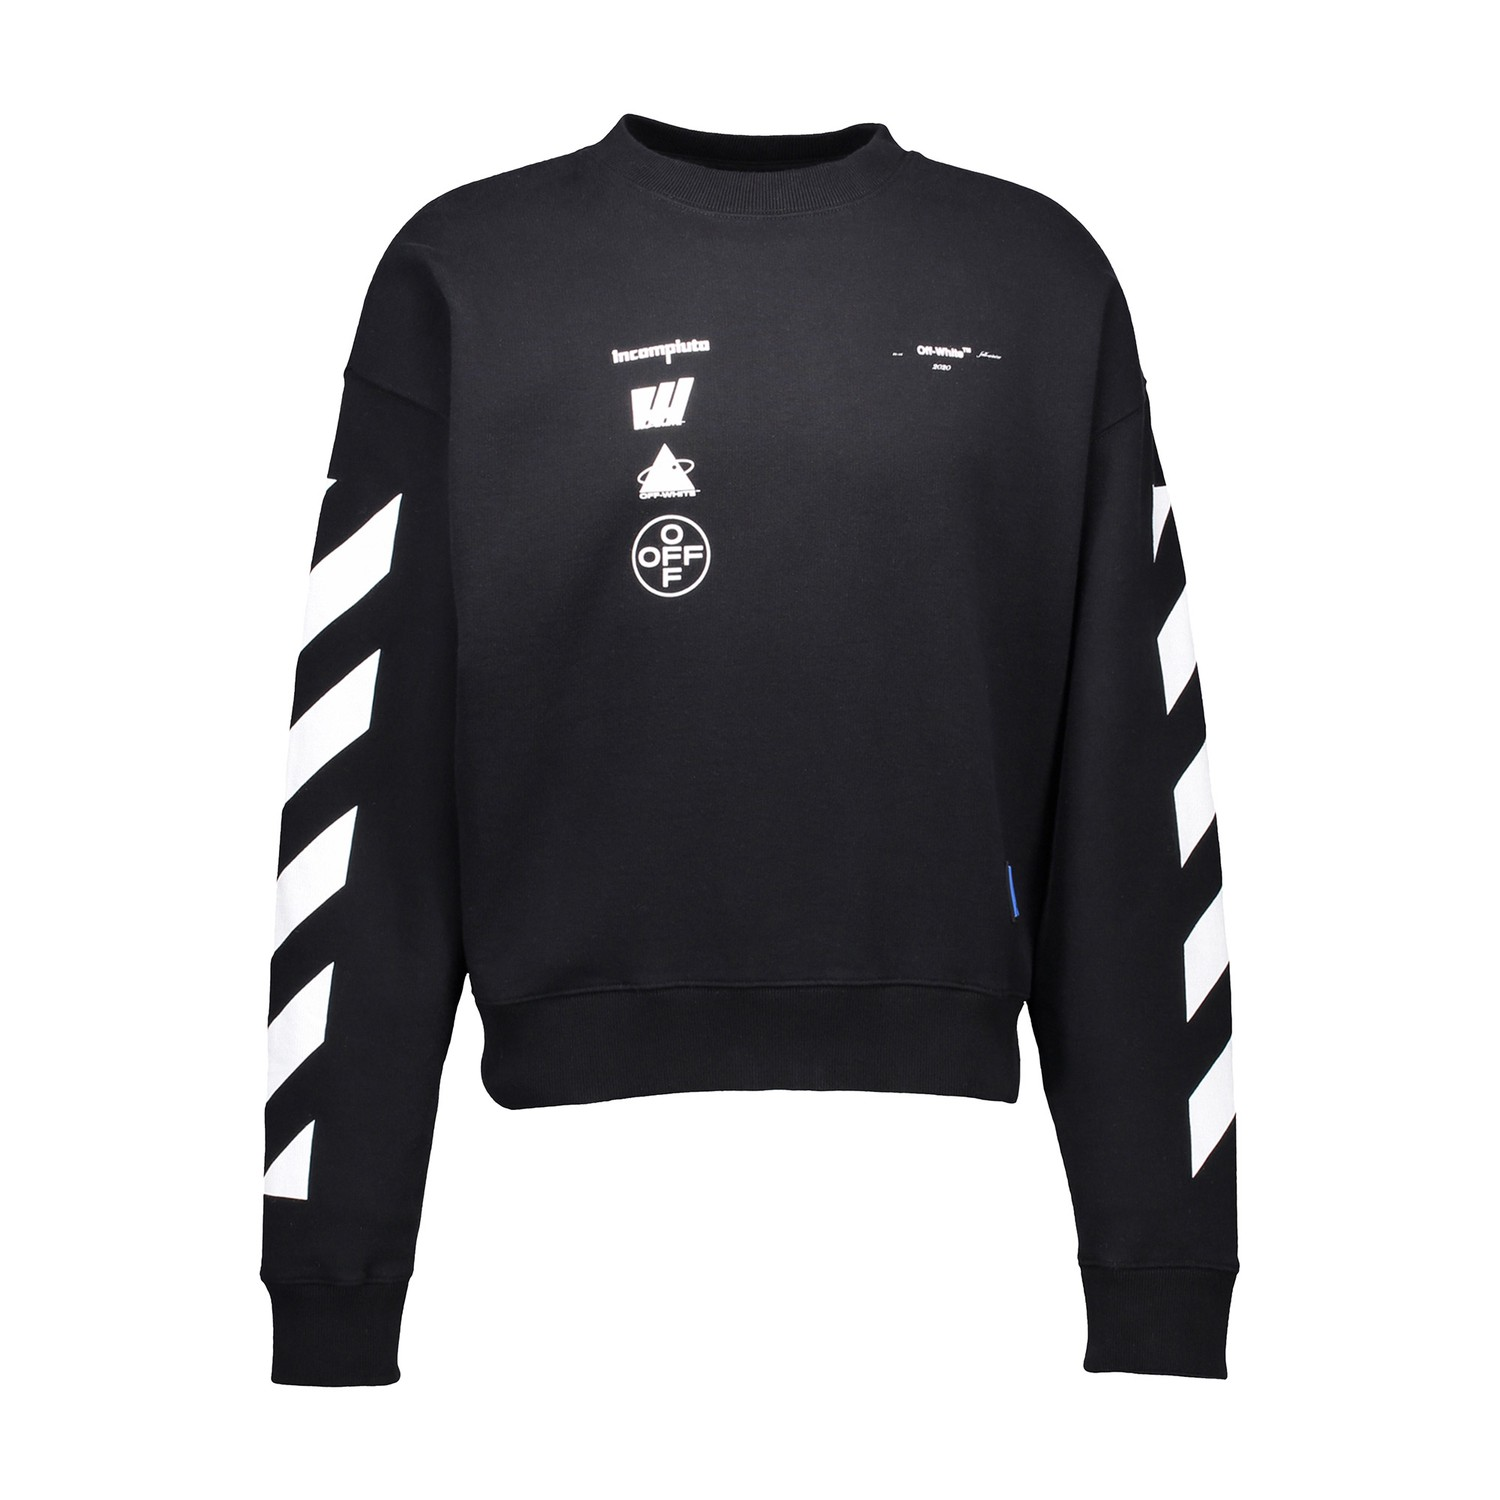 Off-White Diag Mariana De Silva Sweatshirt In Black